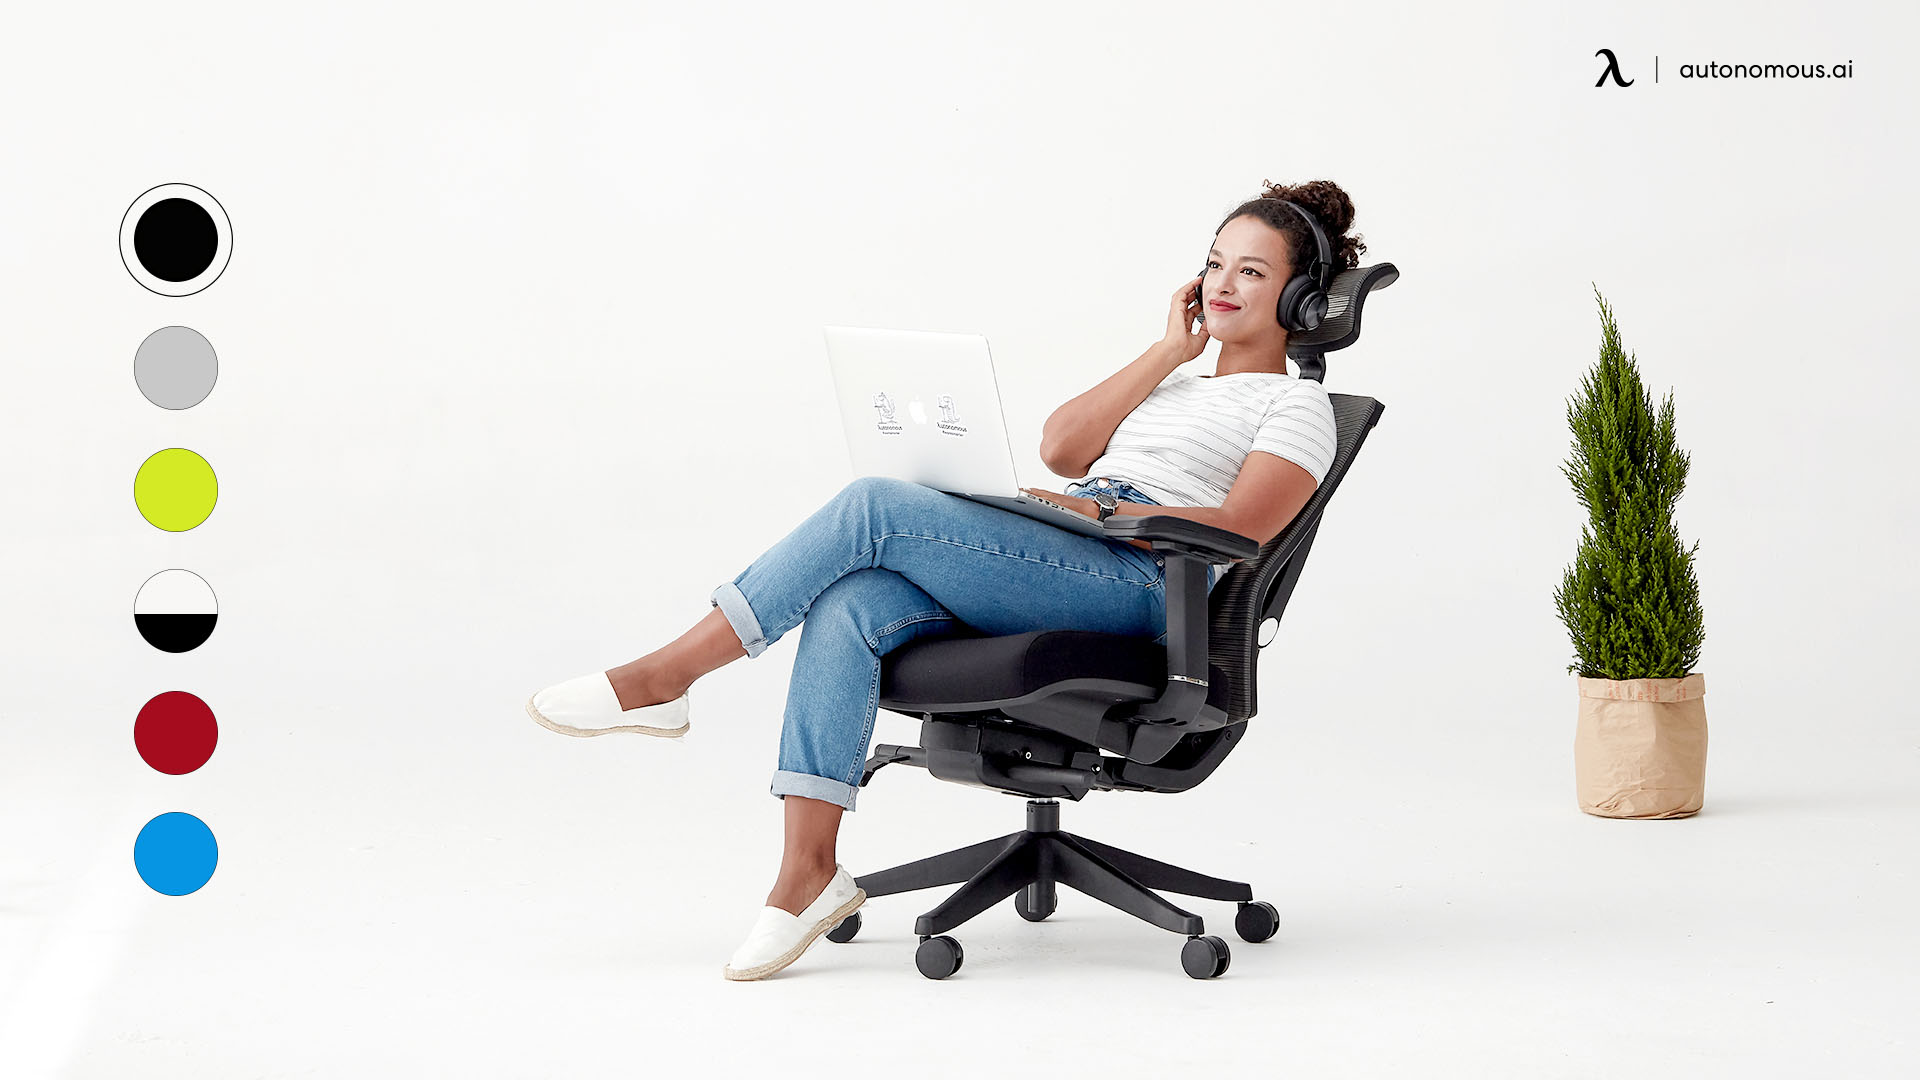 Kinn Chair - Design for Unique Back Support